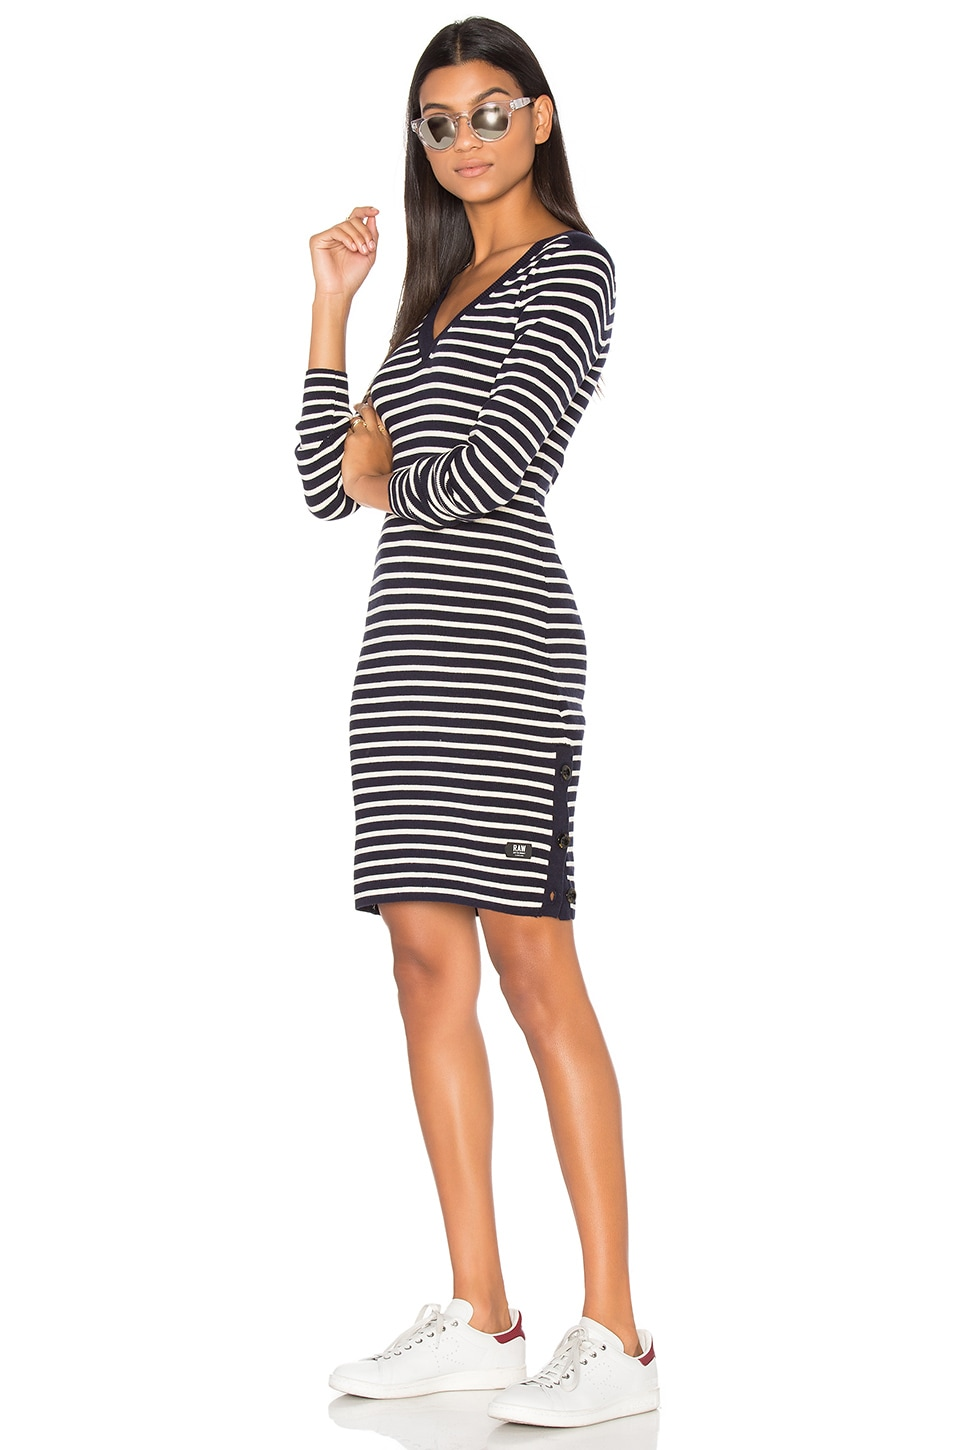 Imon V Neck Sweater Dress by G-Star